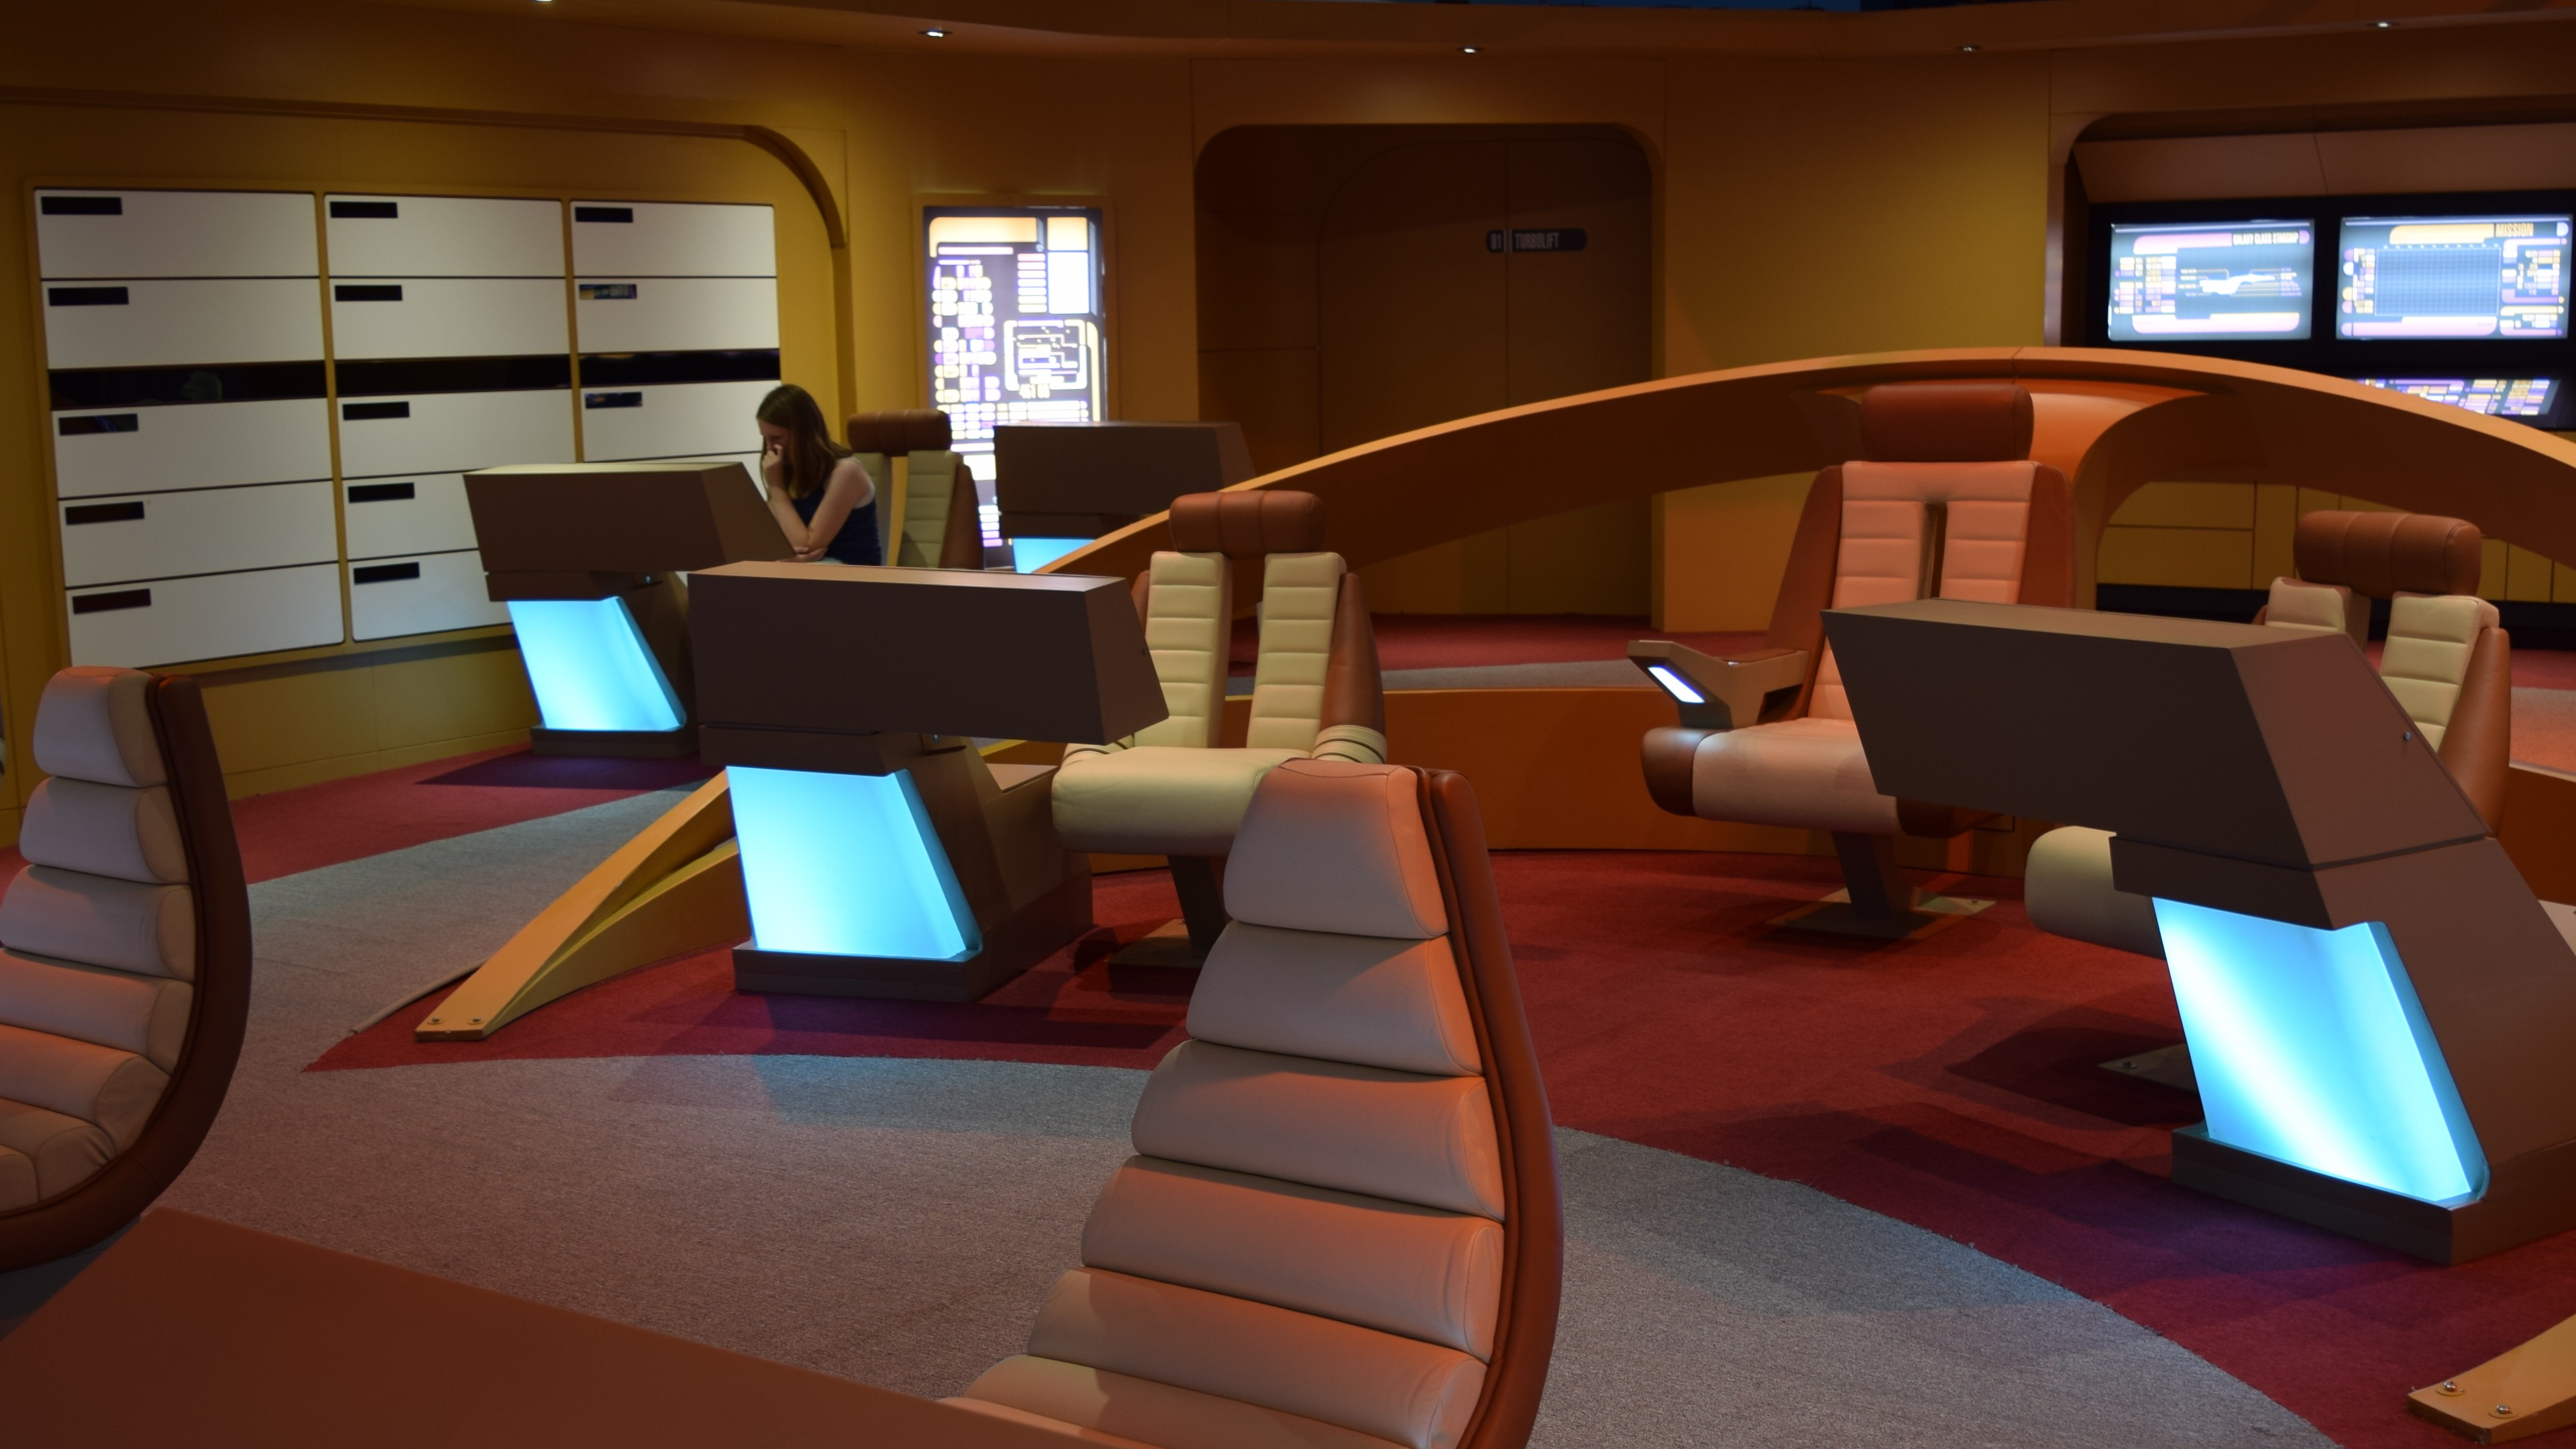 Photos: Trekkies Gather for the First Stop on a North American 'Star Trek' Tour